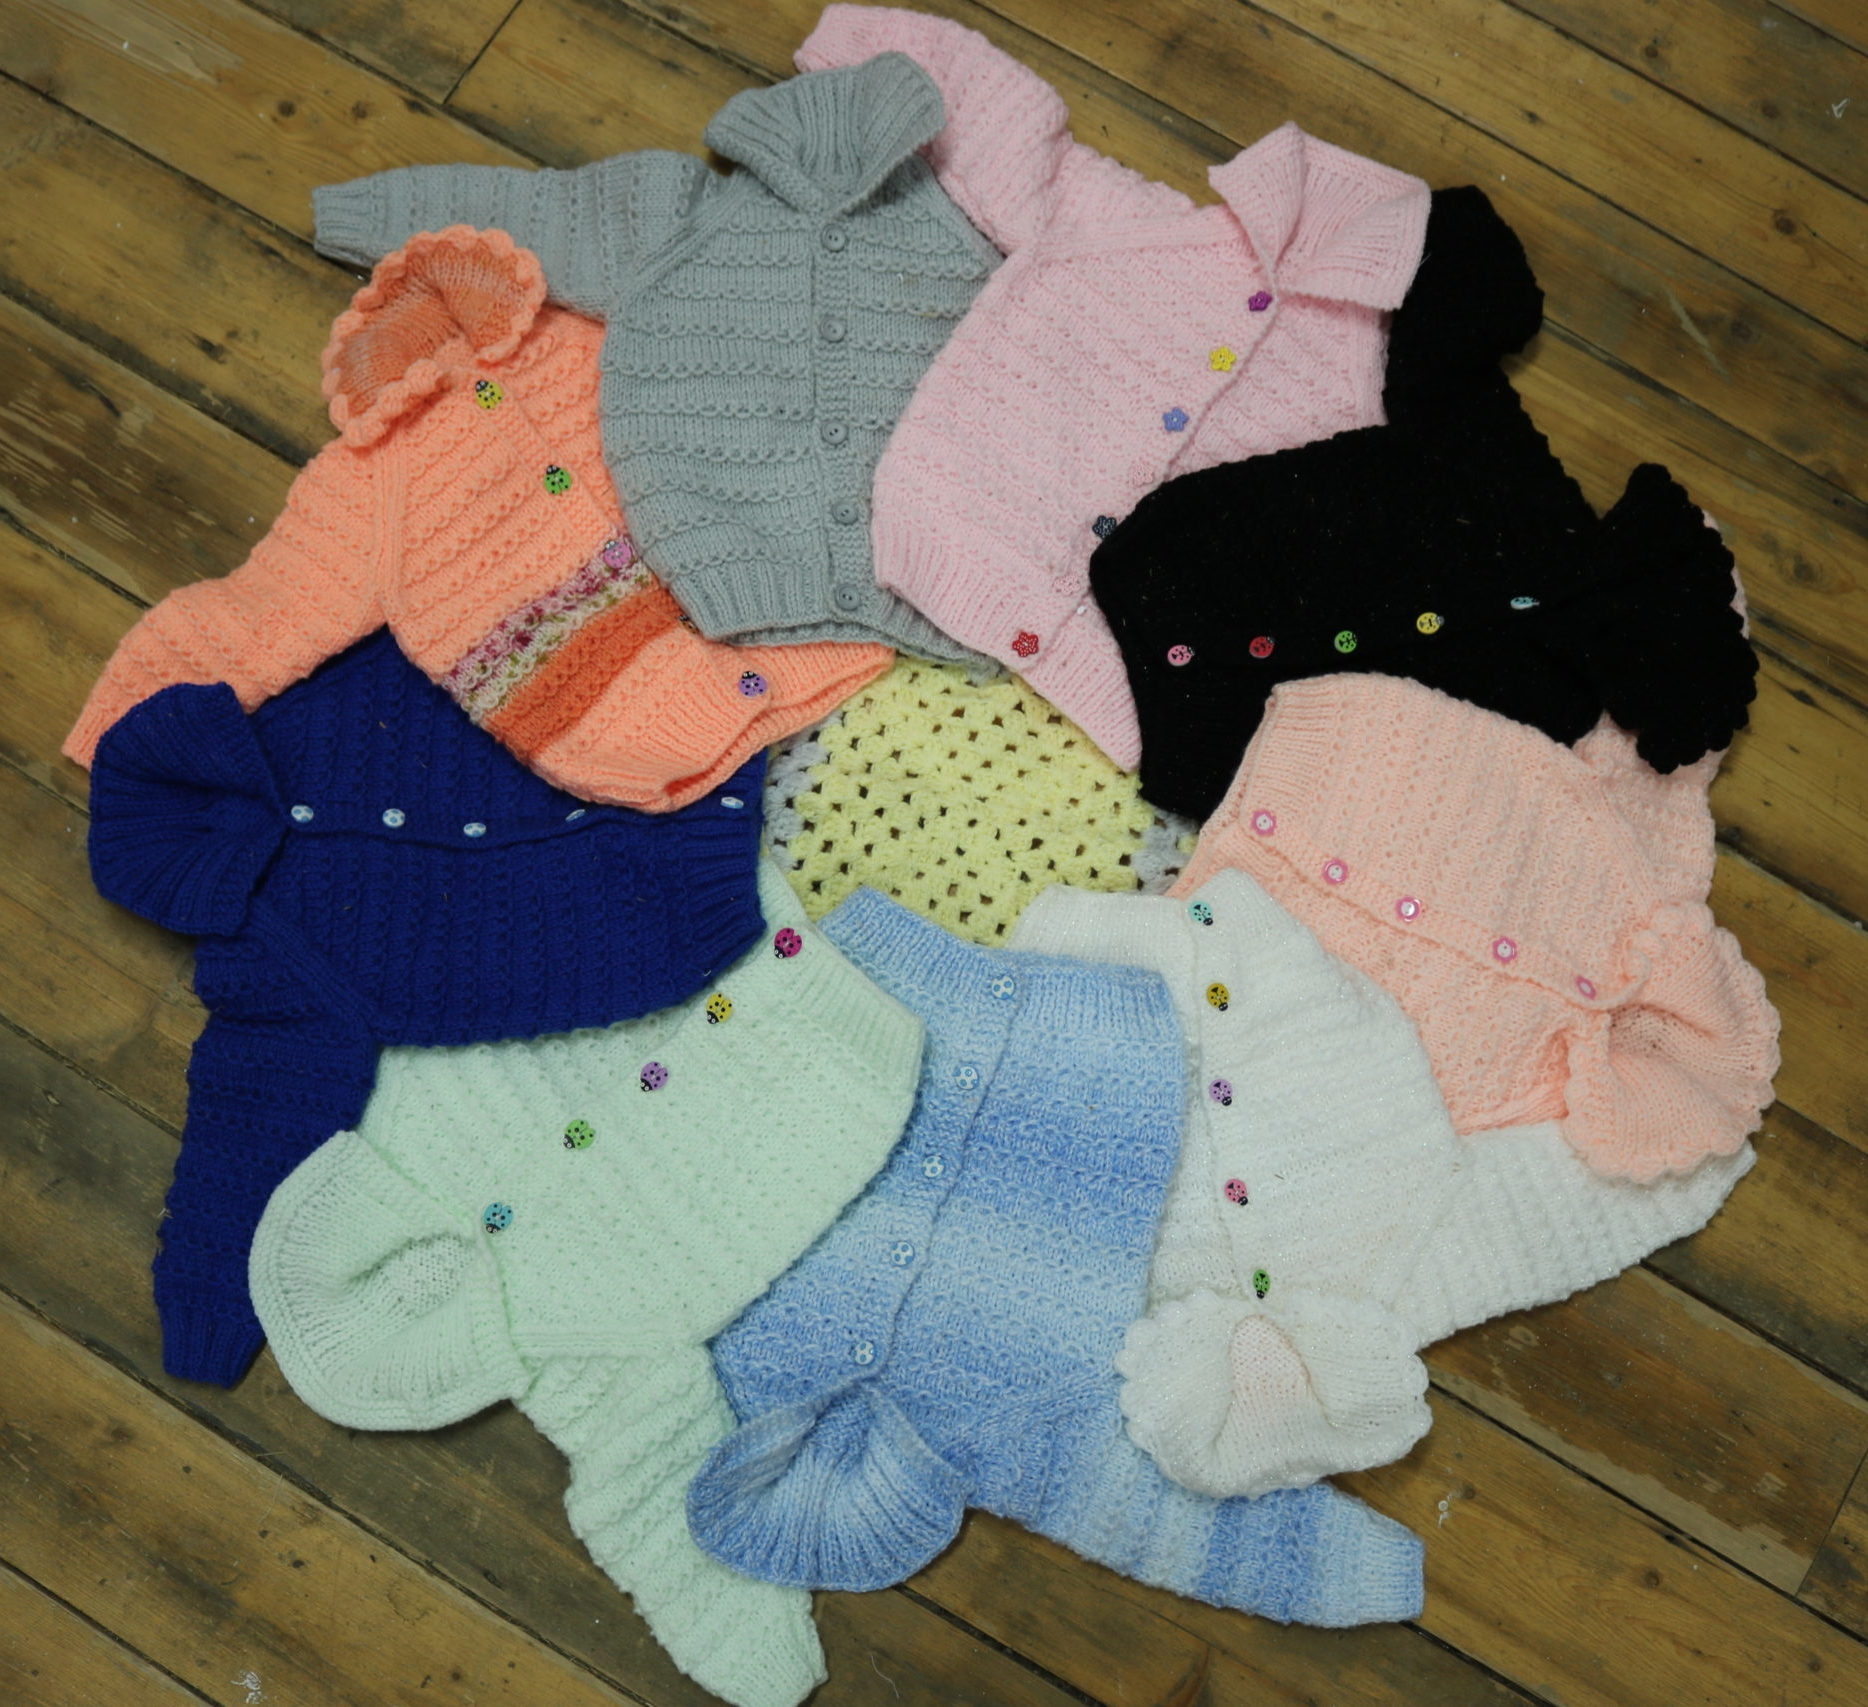 A wonderful array of hand knitted cardigans